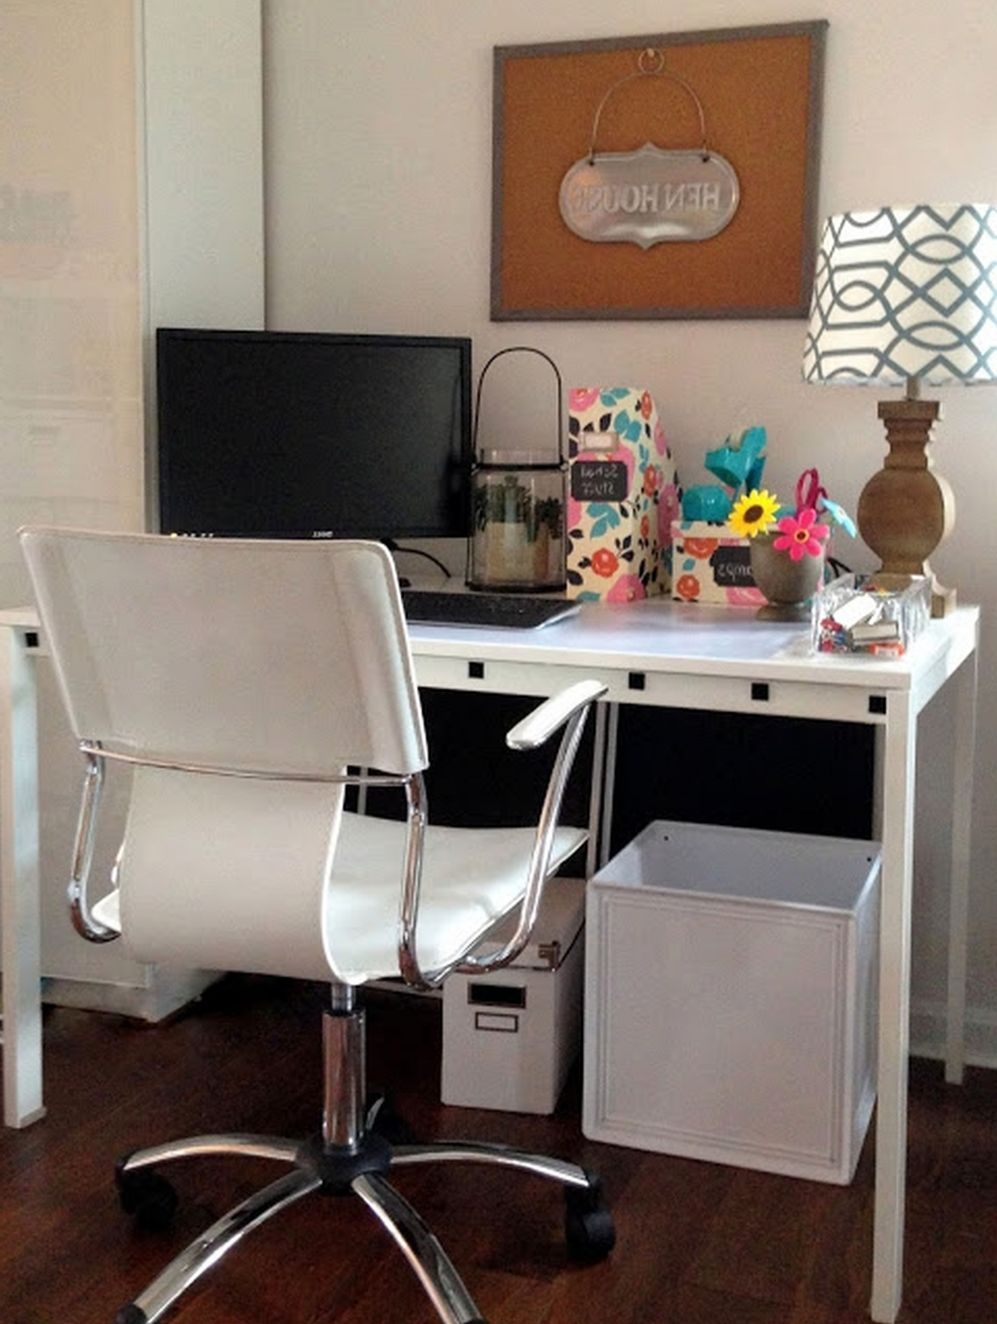 This Modern Computer Desk Is Compact In Size And Is Ideal For Smaller Spaces Such As A Bedroo Home Office Furniture Desk Home Office Design Office Desk Designs Computer desk for small bedroom